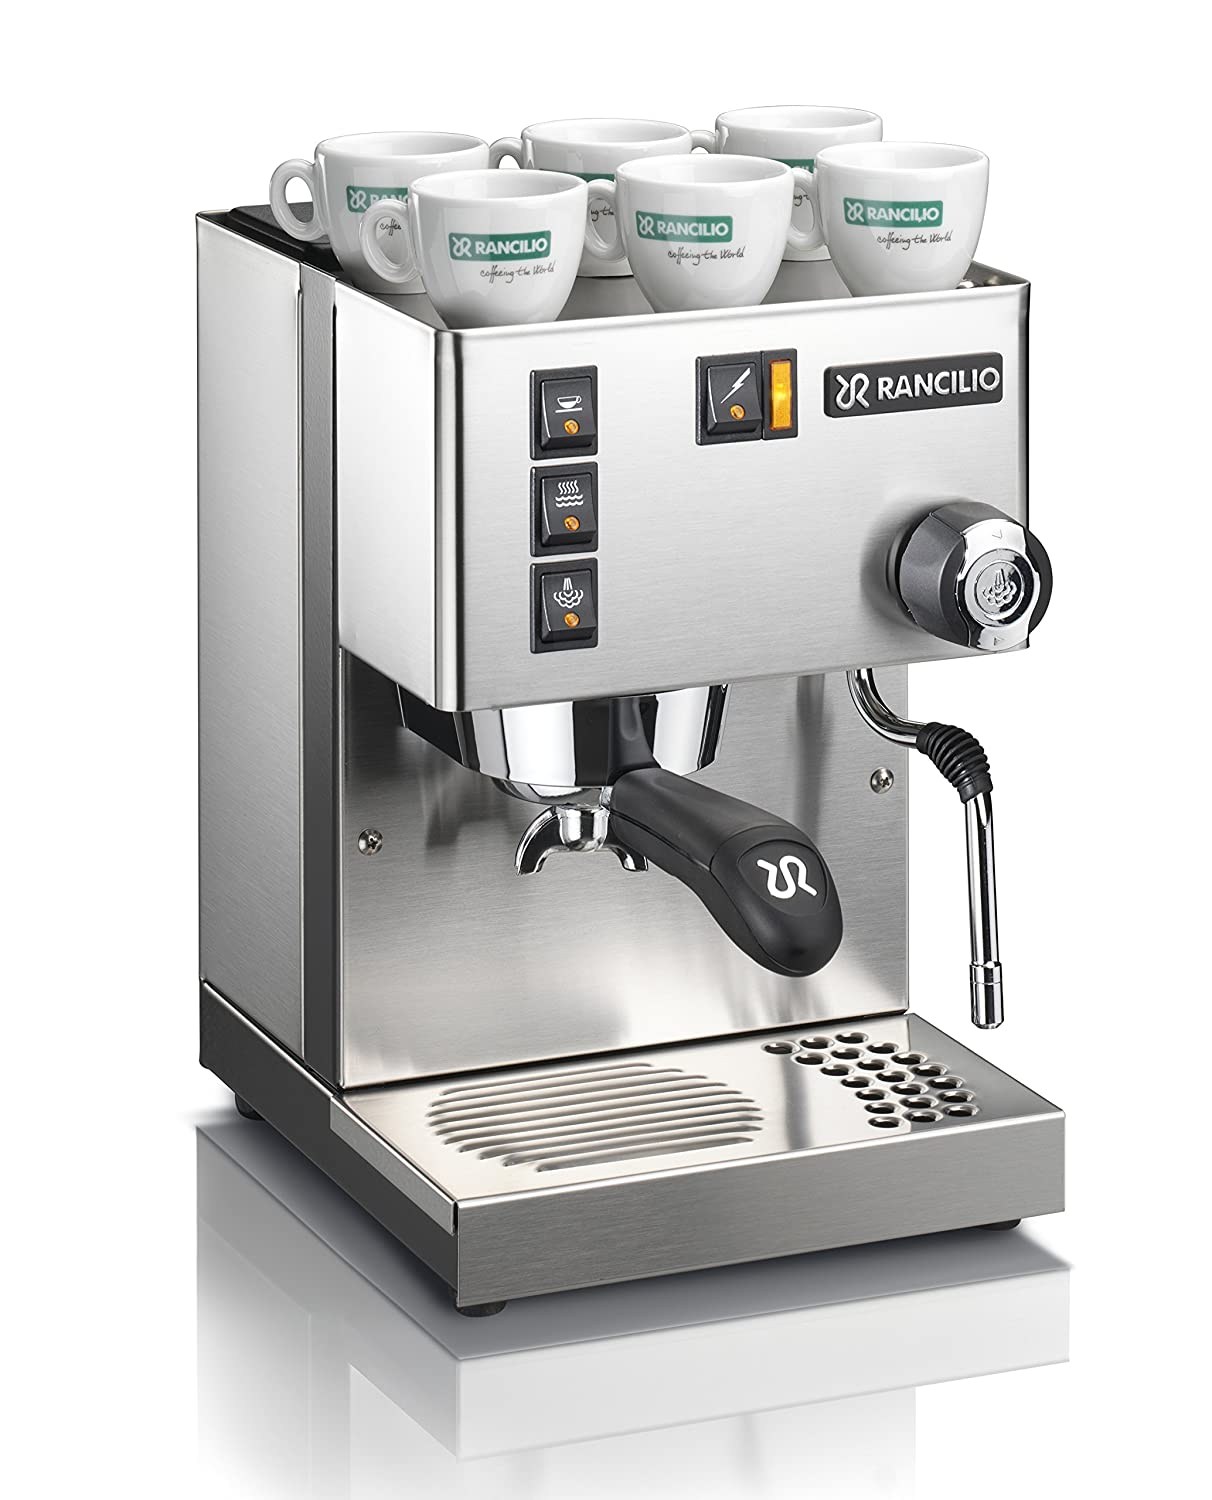 Rancilio Silvia Espresso Machine with Iron Frame and Stainless Steel Side  Panels, 11 4 by 13 4-Inch